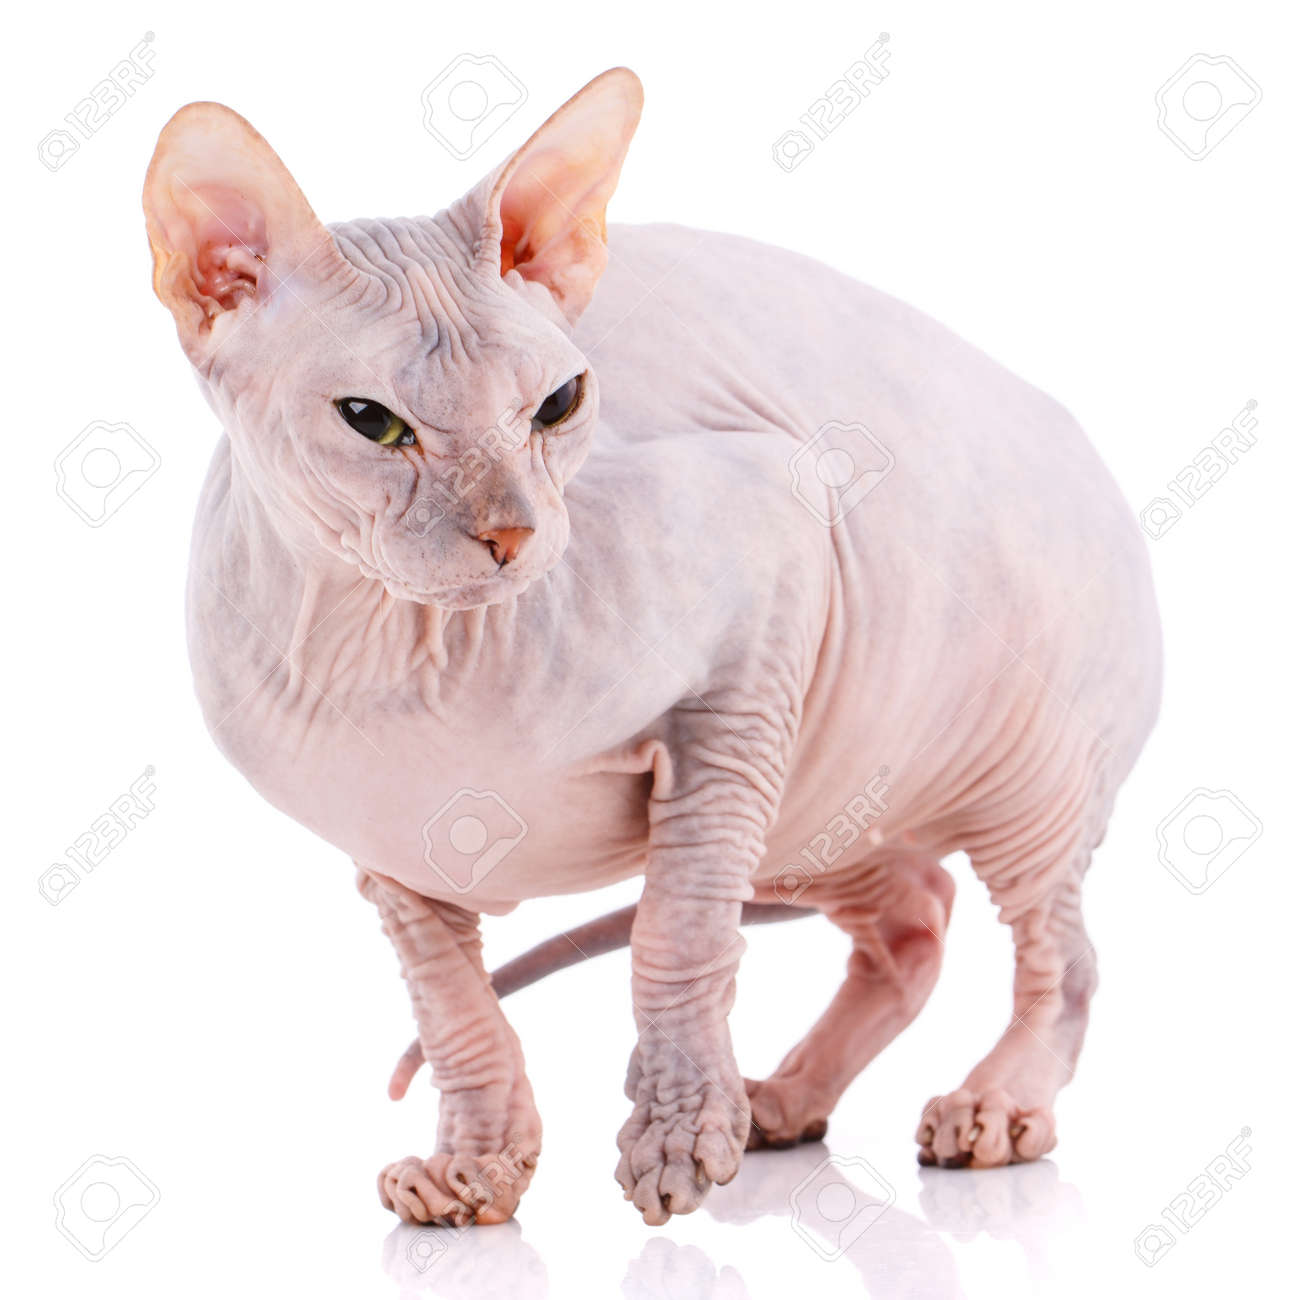 Bald Sphynx kitten on a white